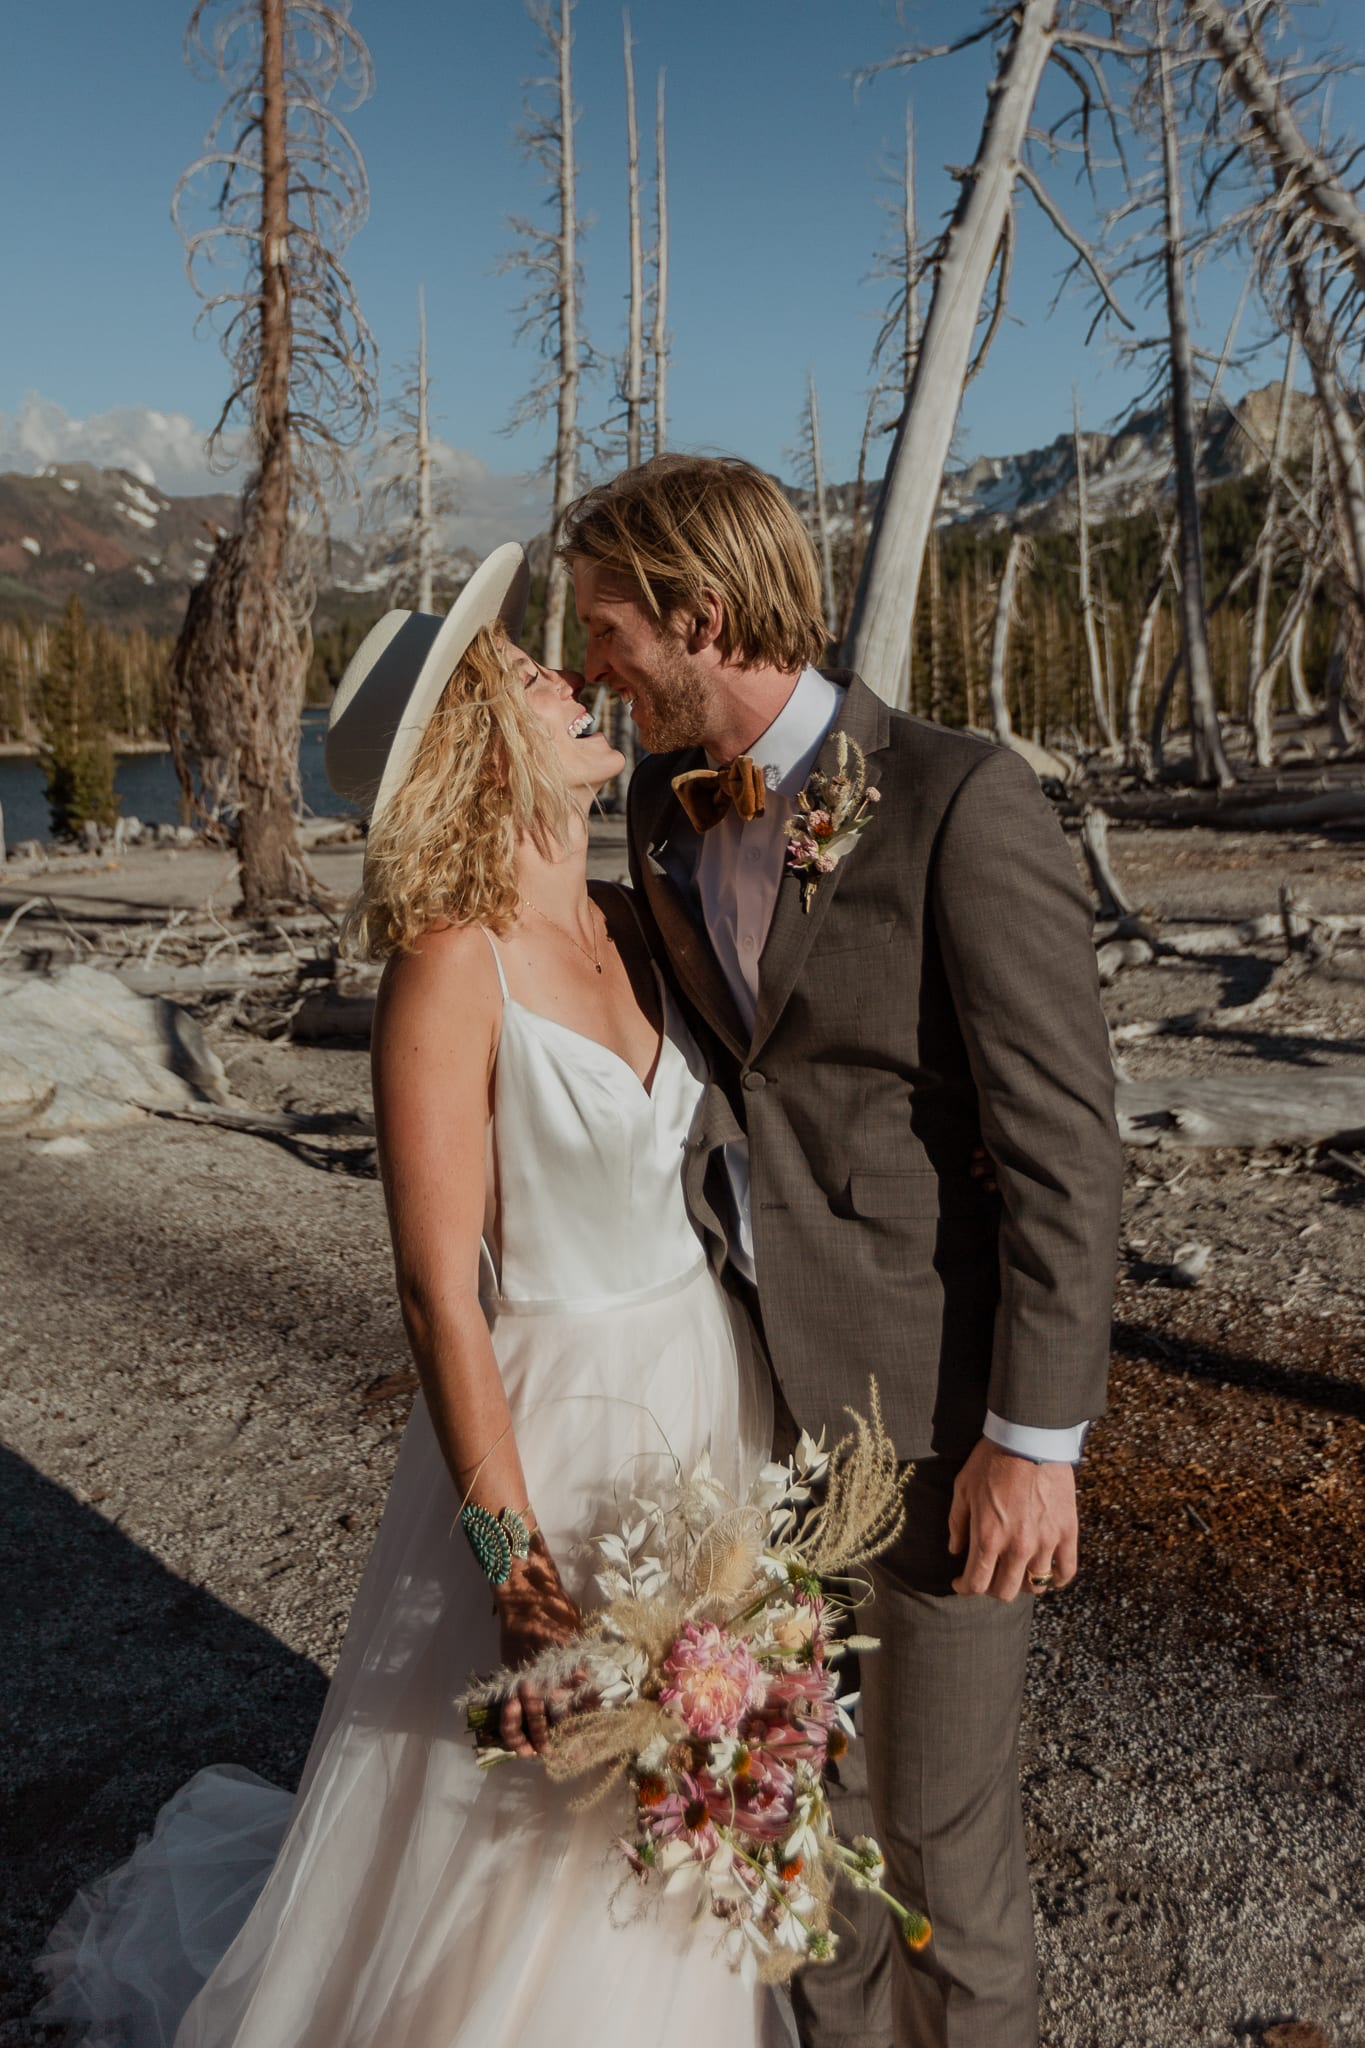 Tyler and Haylee hold each other close while laughing as they enjoy their adventure elopement and hike to McLeod Lake